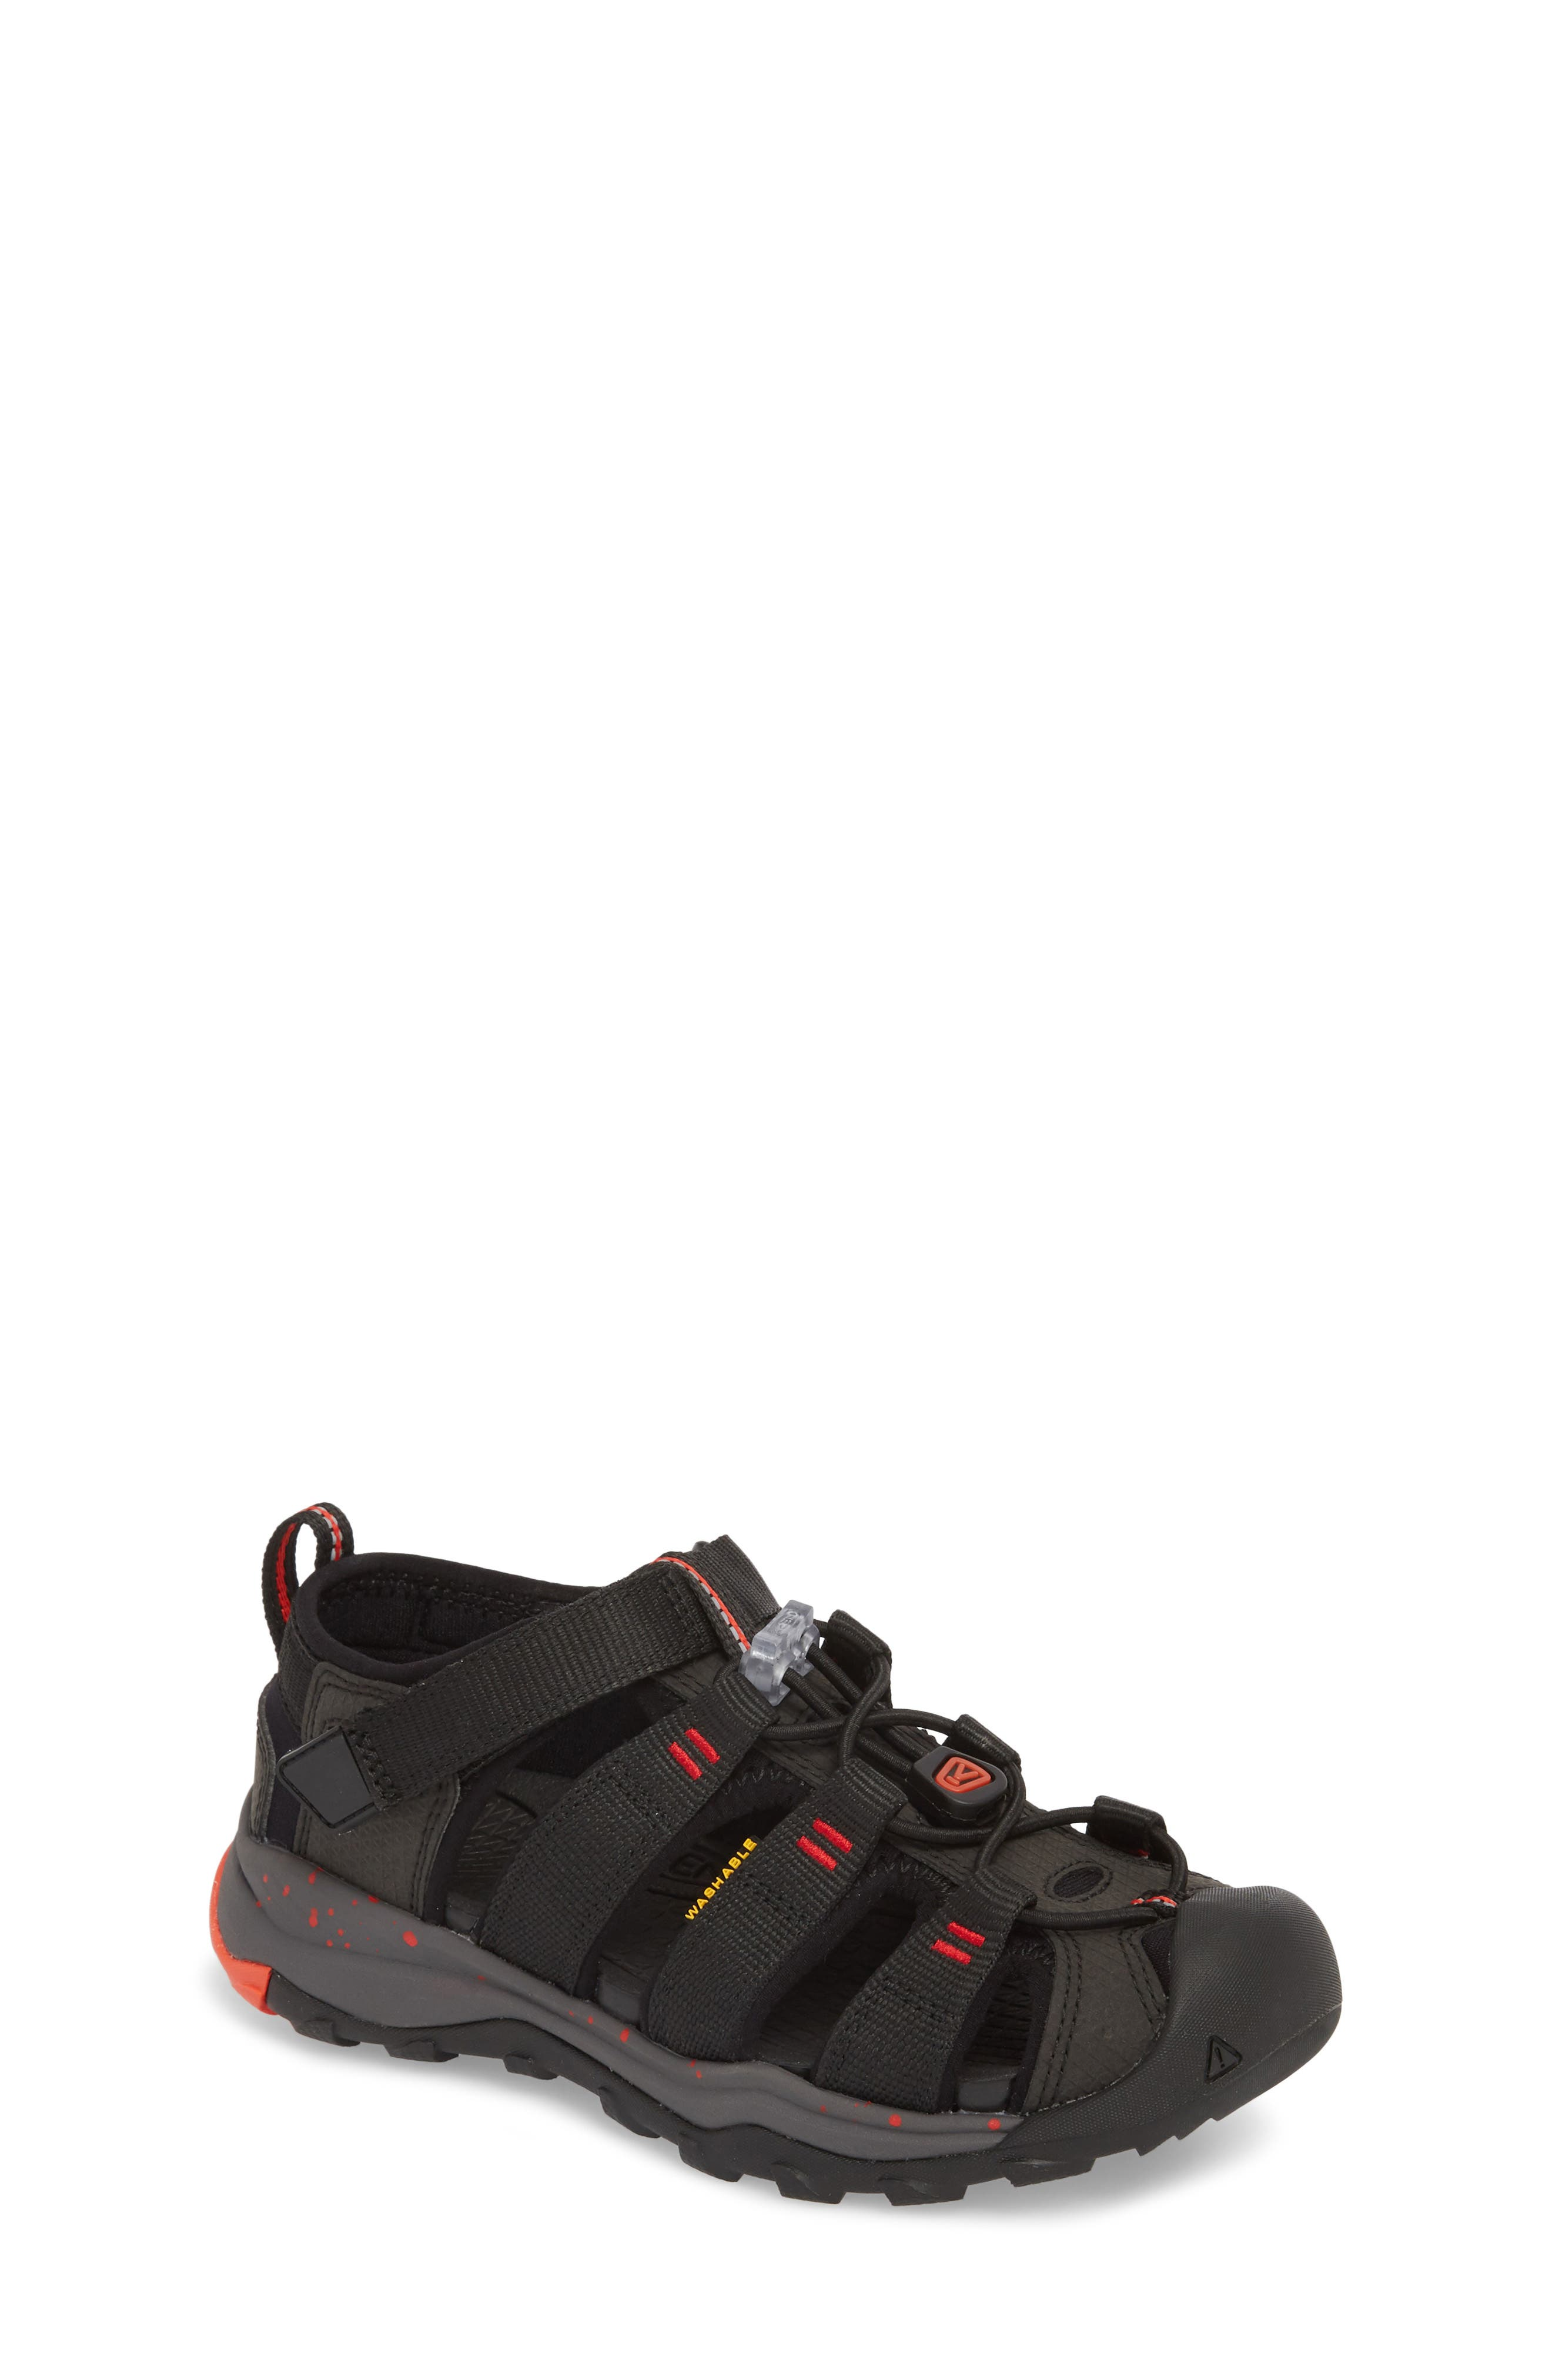 Newport Neo H2 Water Friendly Sandal,                             Main thumbnail 1, color,                             Black/ Fiery Red